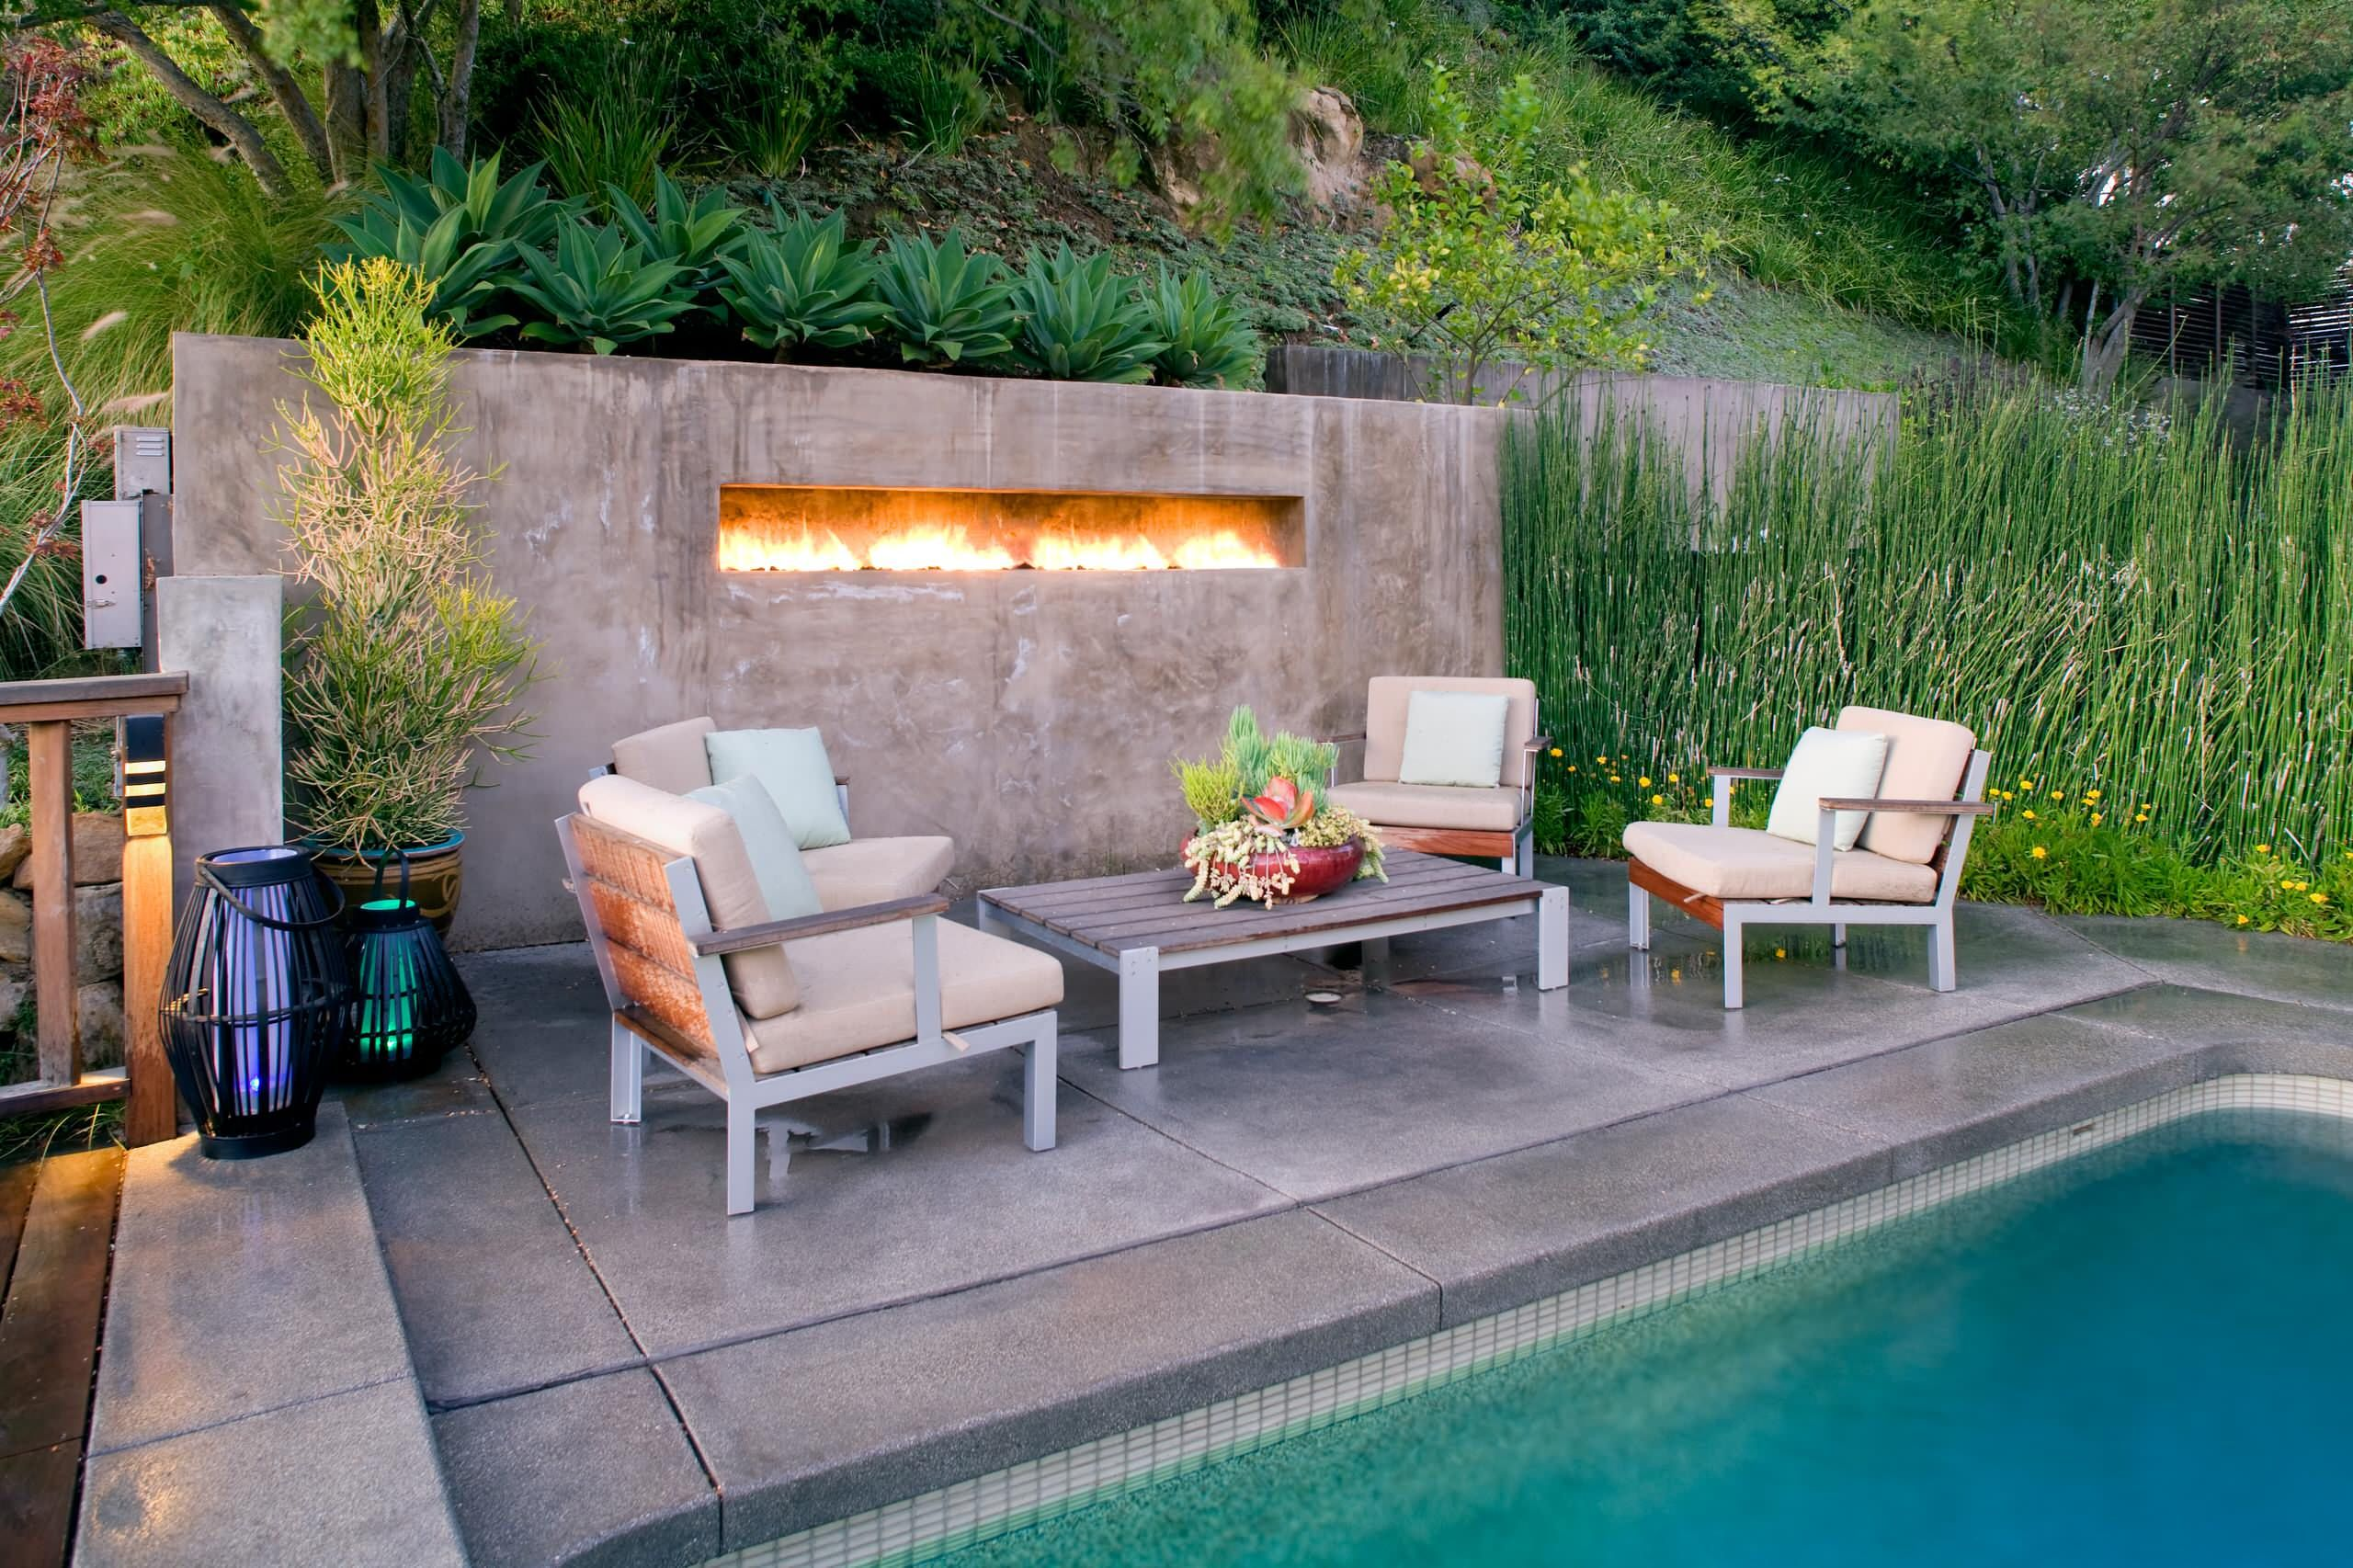 50 Beste Patio Ideen F R Design Inspiration #Beste #Design